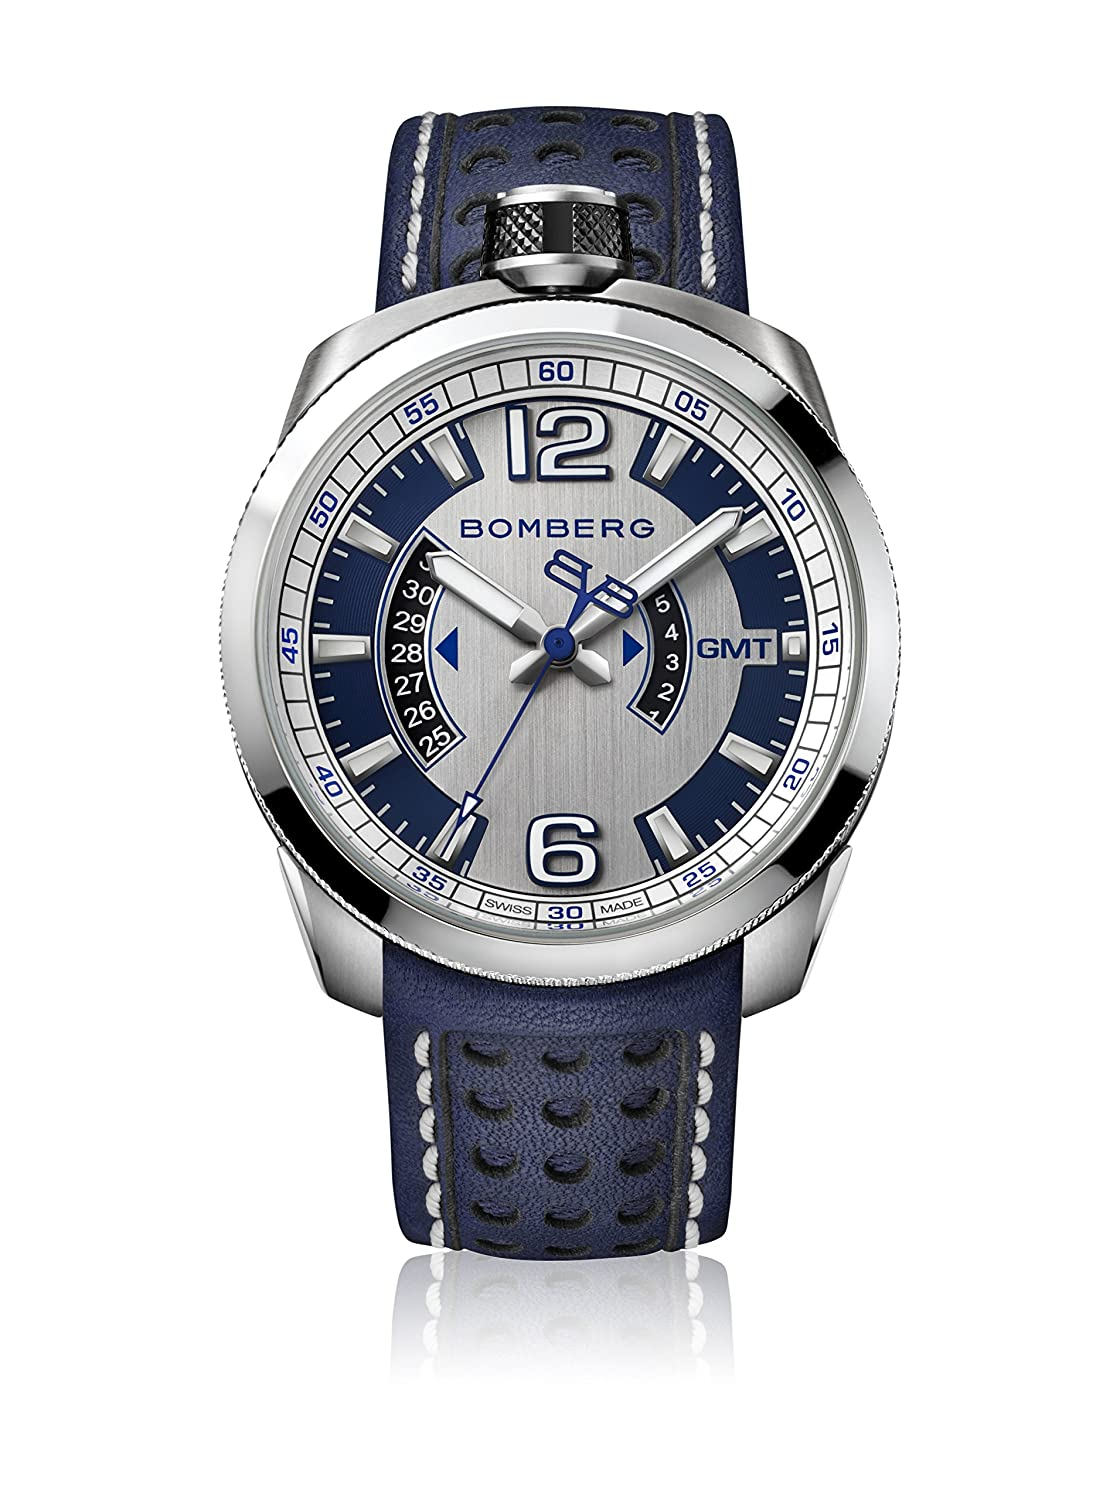 Bomberg BS45GMTSS.002.3 Bolt-68 collection Uhren - Swiss Made - 45 mm - Convertible taschenuhren